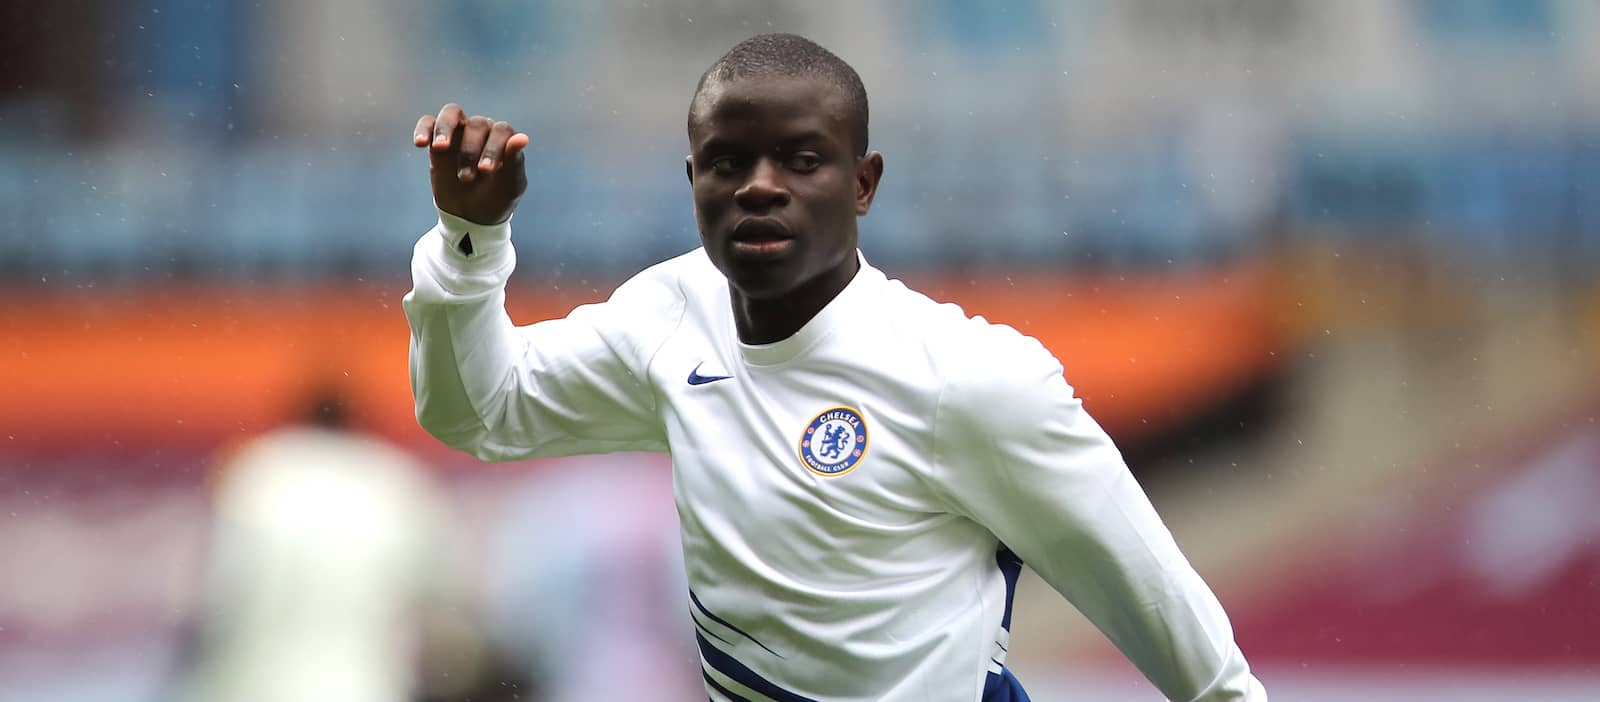 N'Golo Kante set to miss Manchester United vs Chelsea Semi-Final